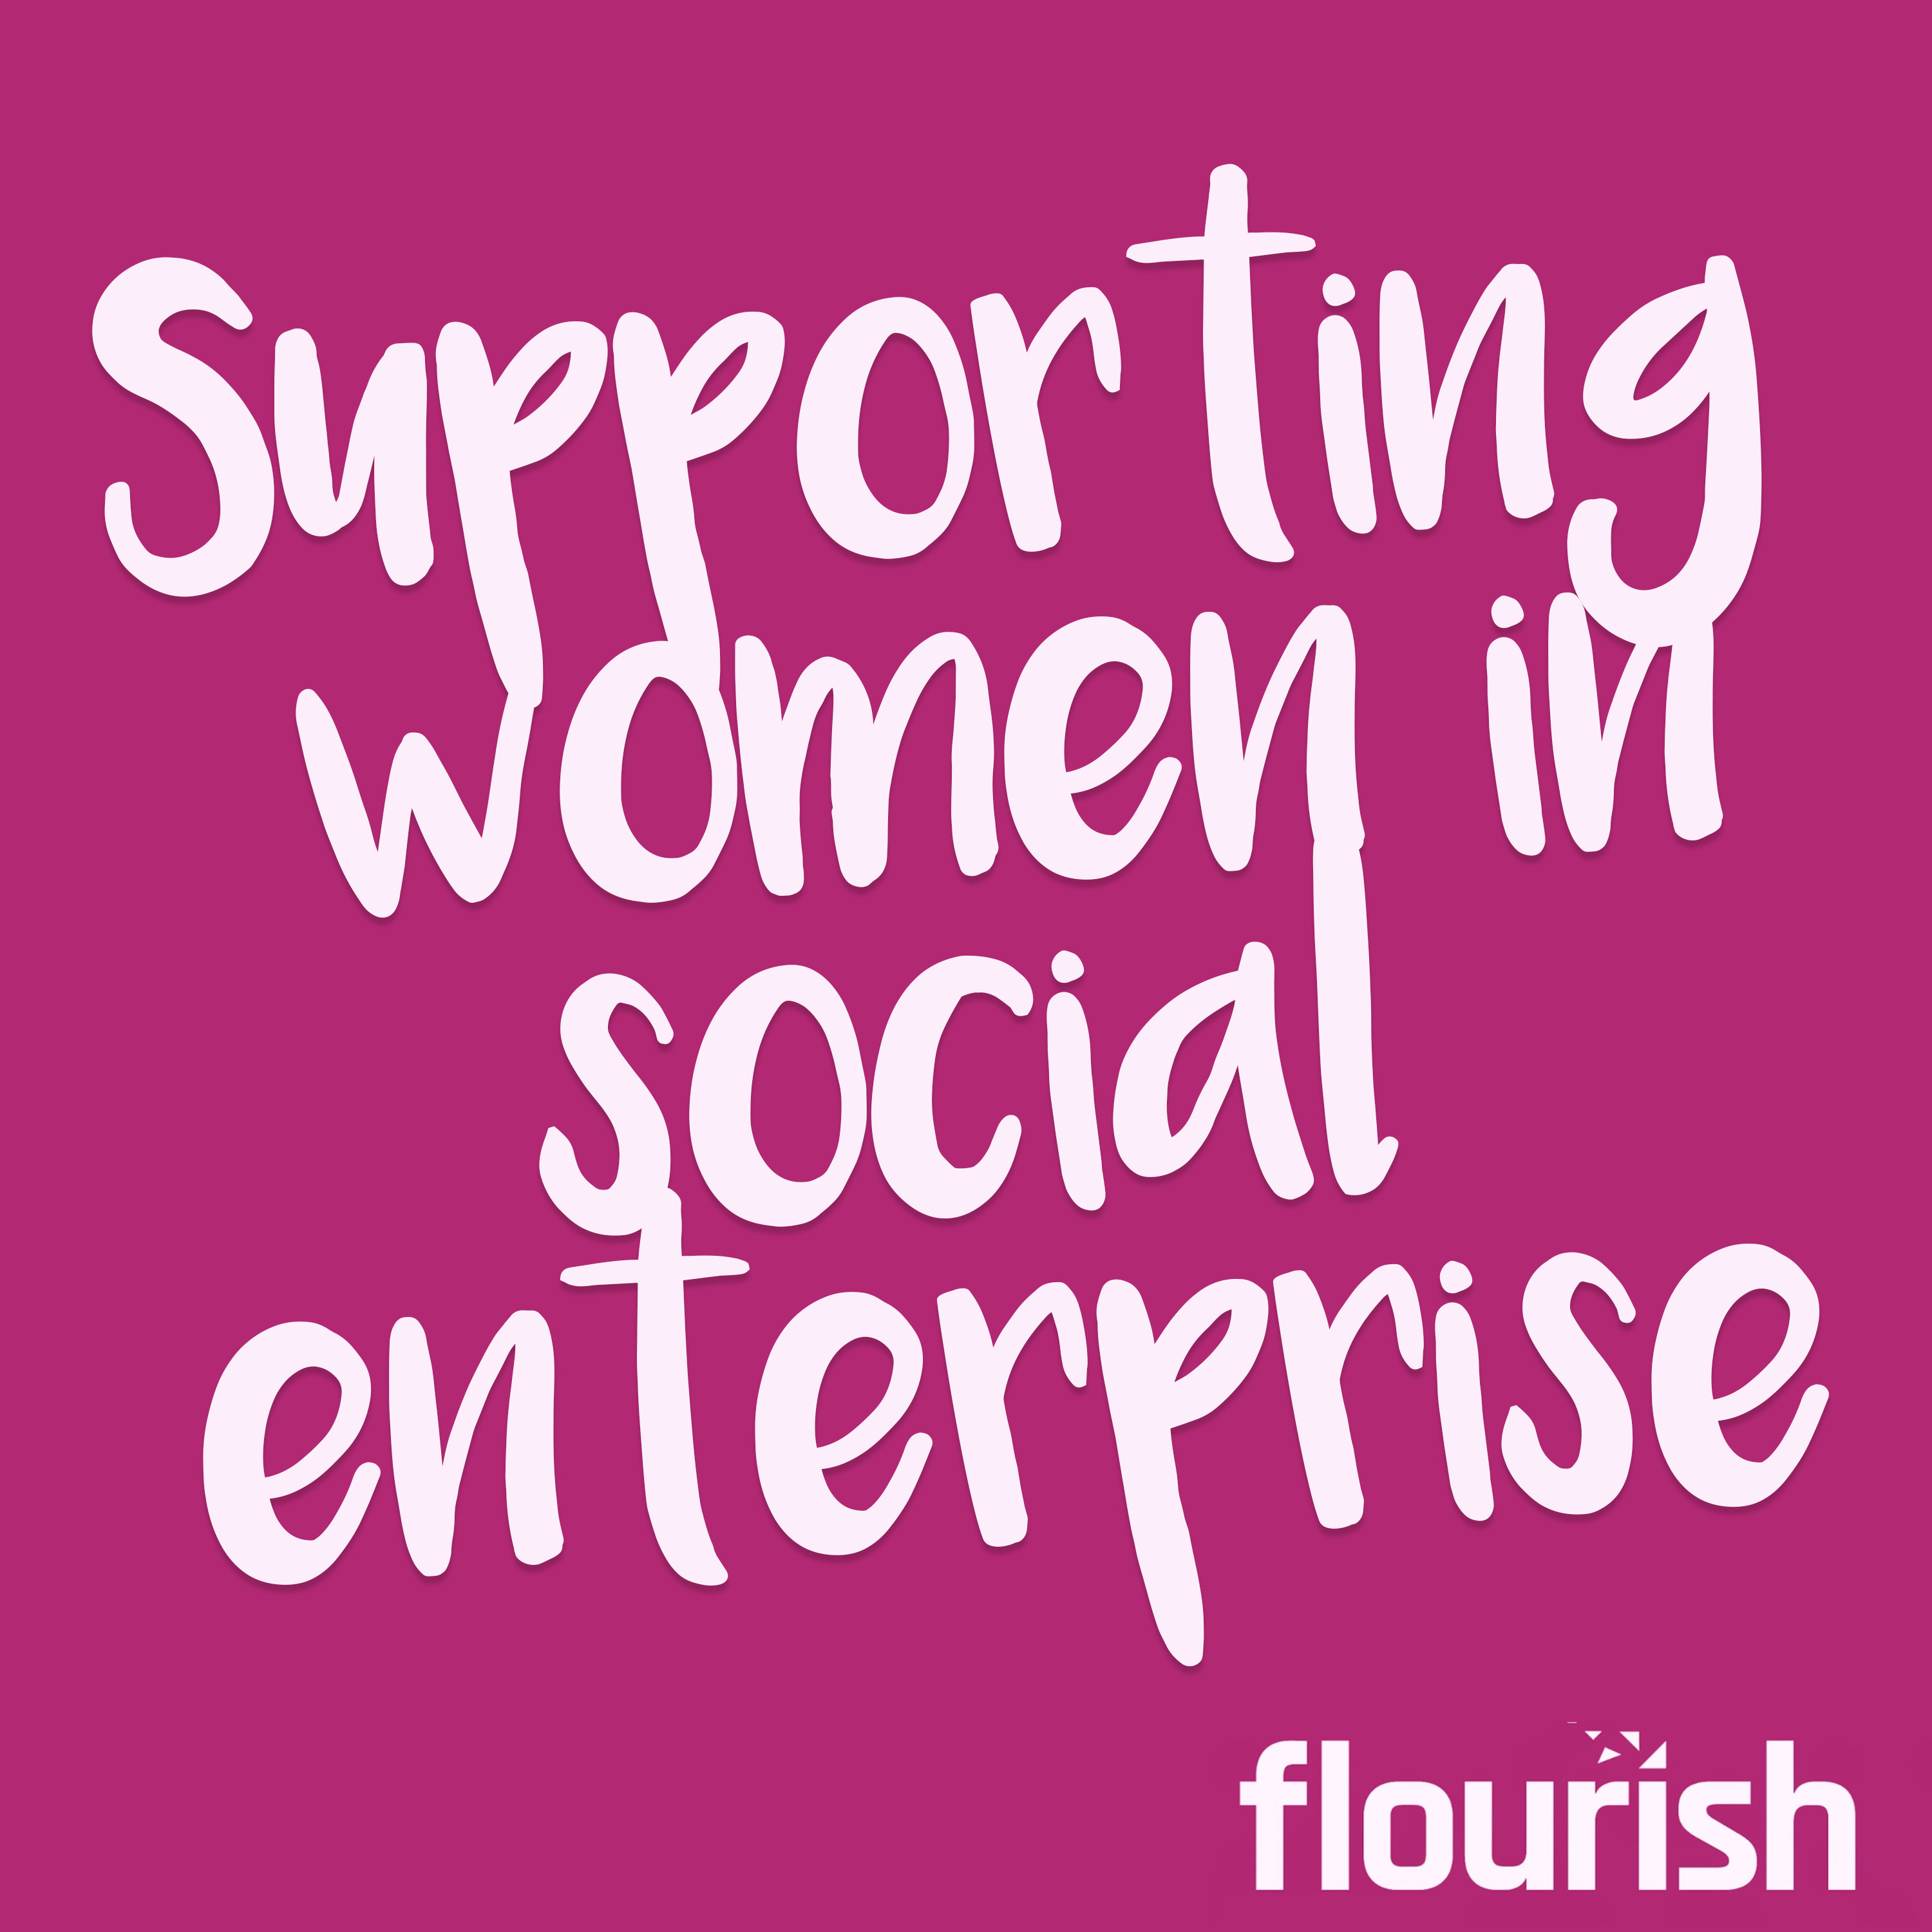 white words on a pink background thats saud 'supporting women in social enterprise'